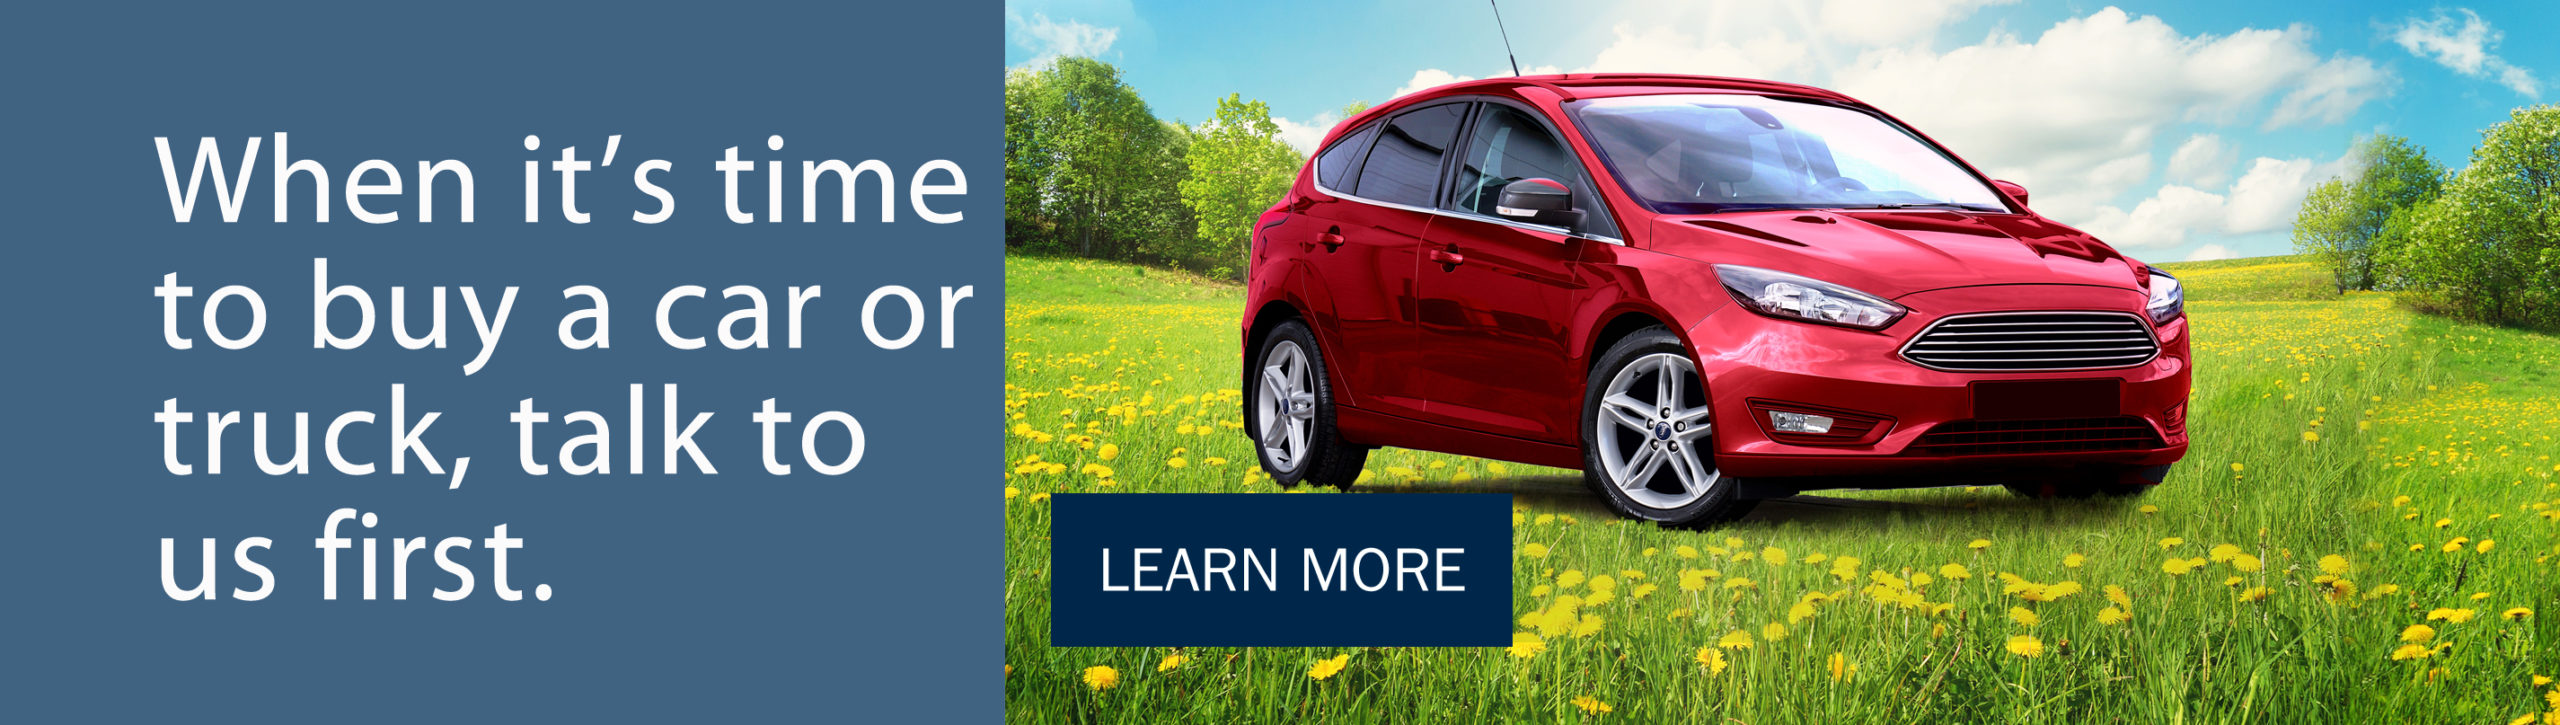 Are your ready for a new vehicle?